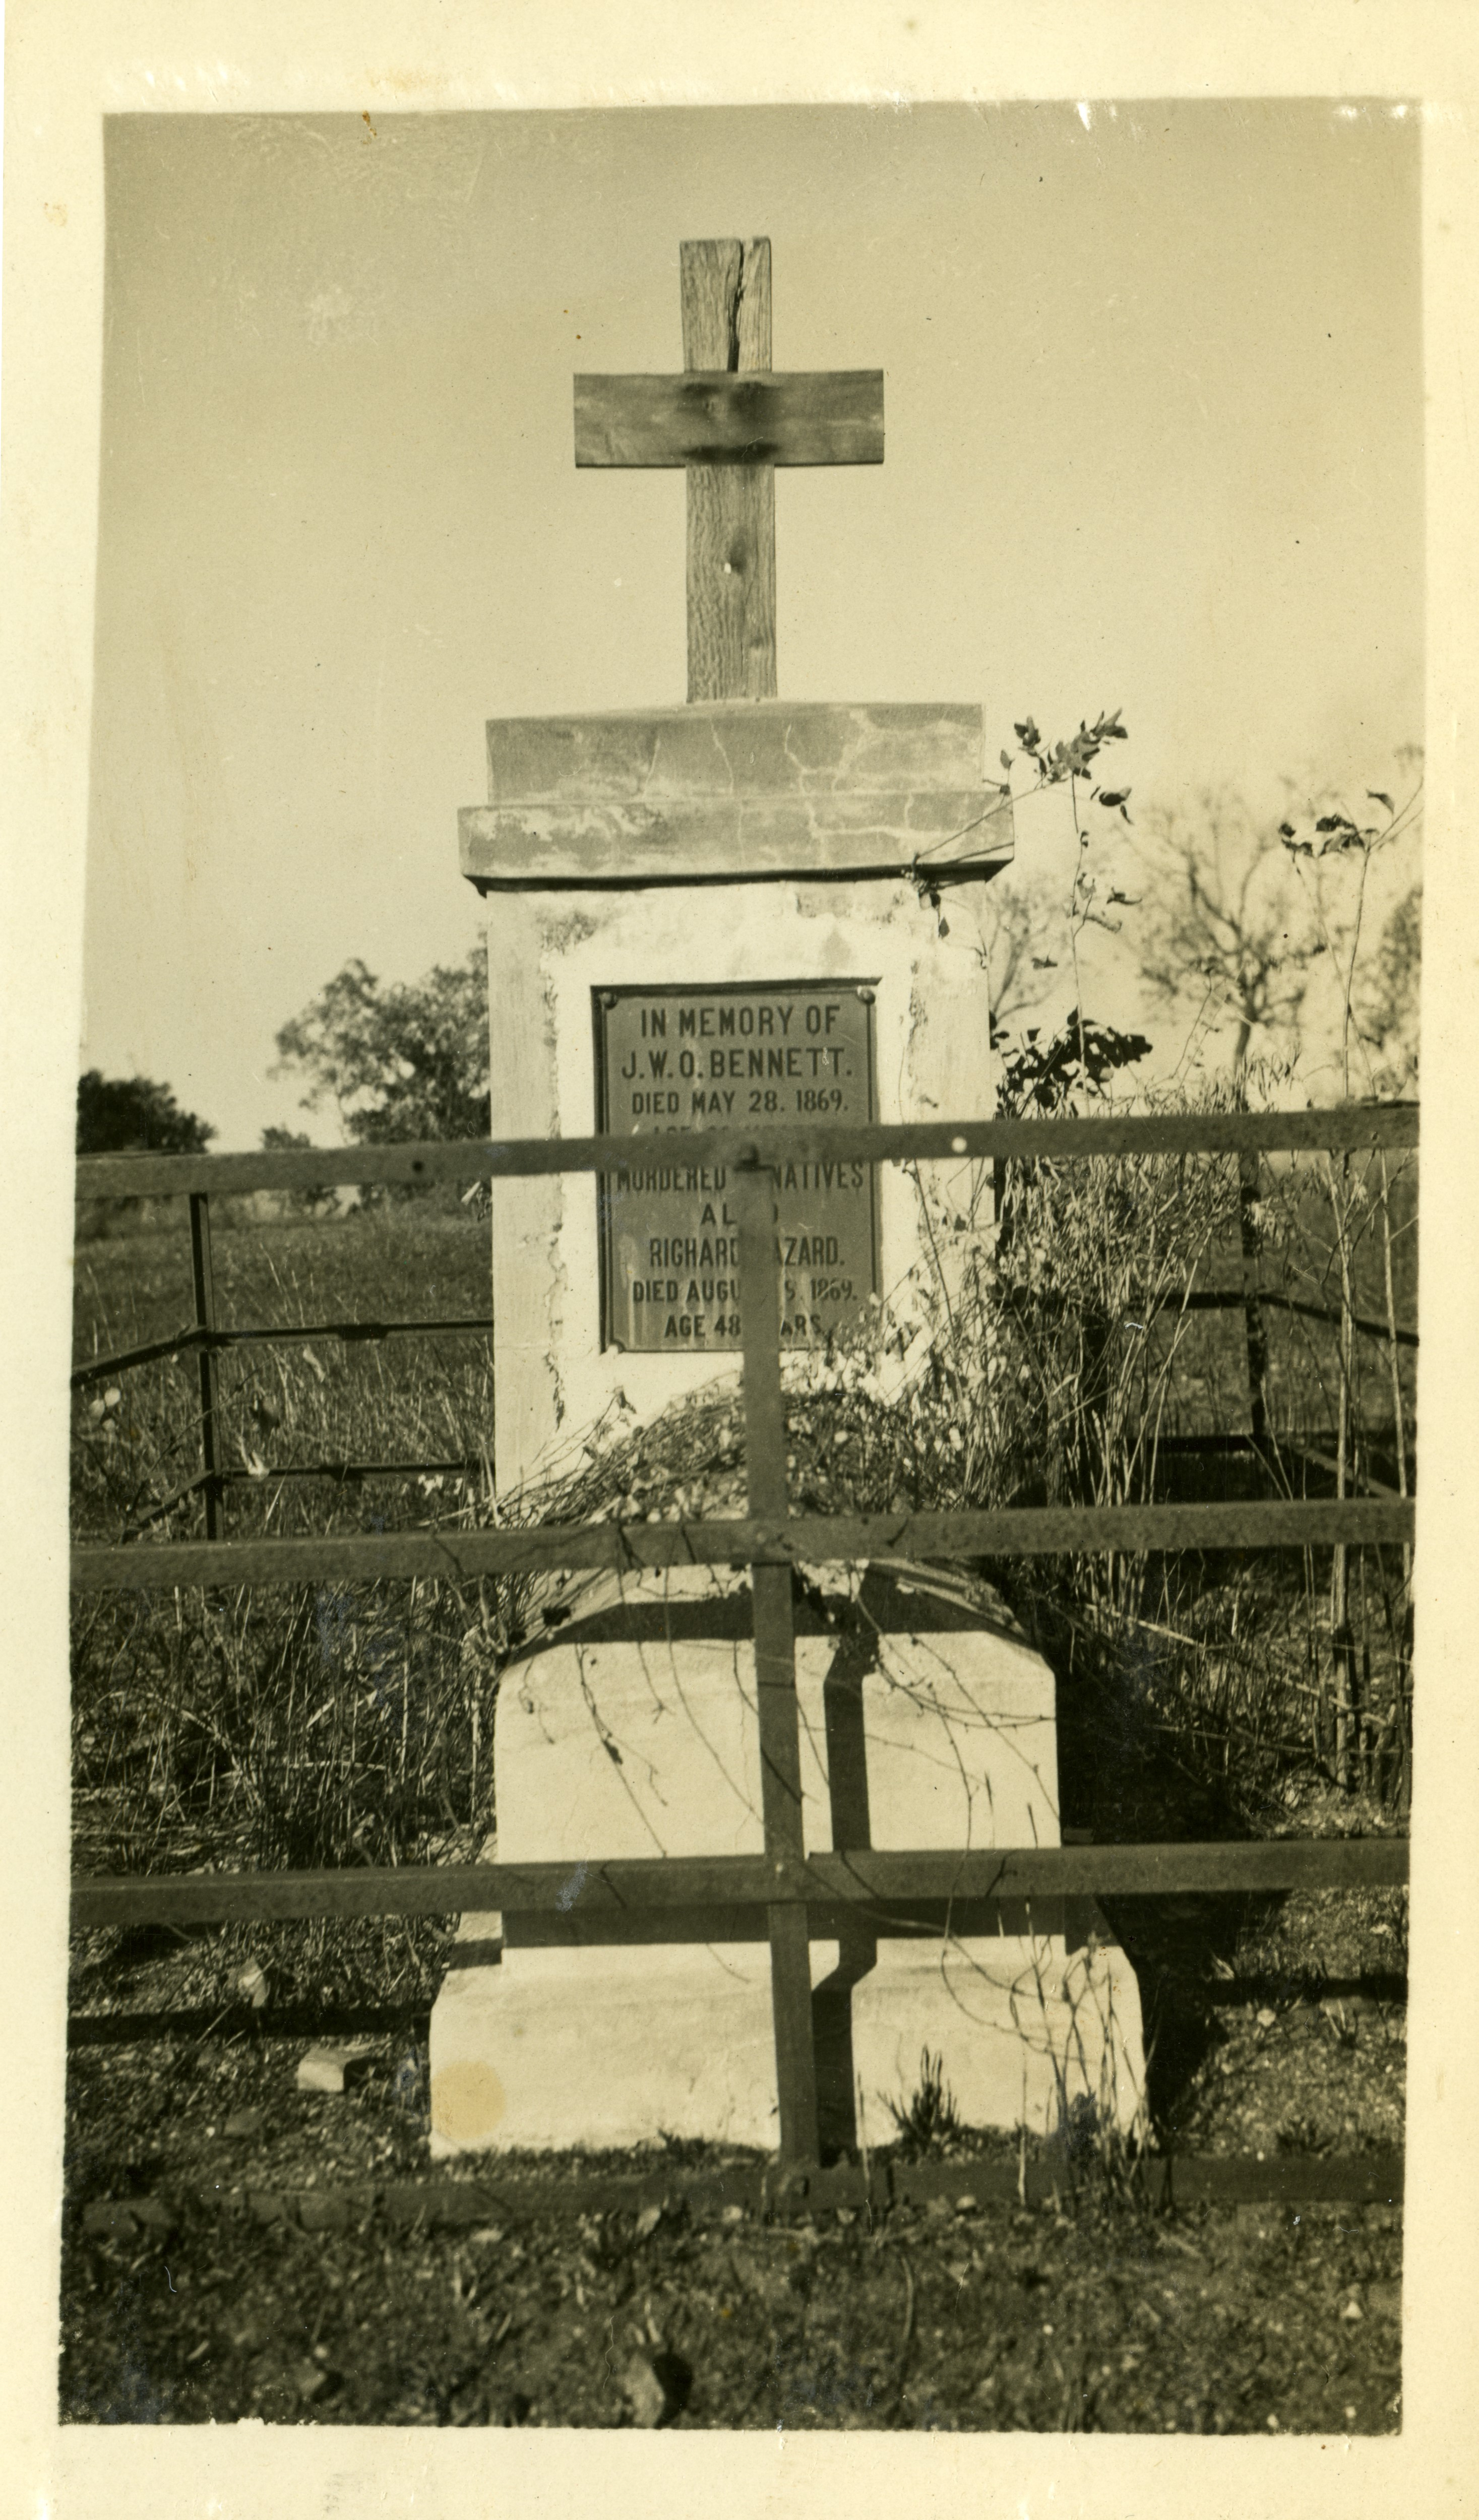 Depicts John Bennett's grave behind a wooden fence. The grave is a high stone pedestal with a wooden cross on top and a bronze memorial plaque at front.